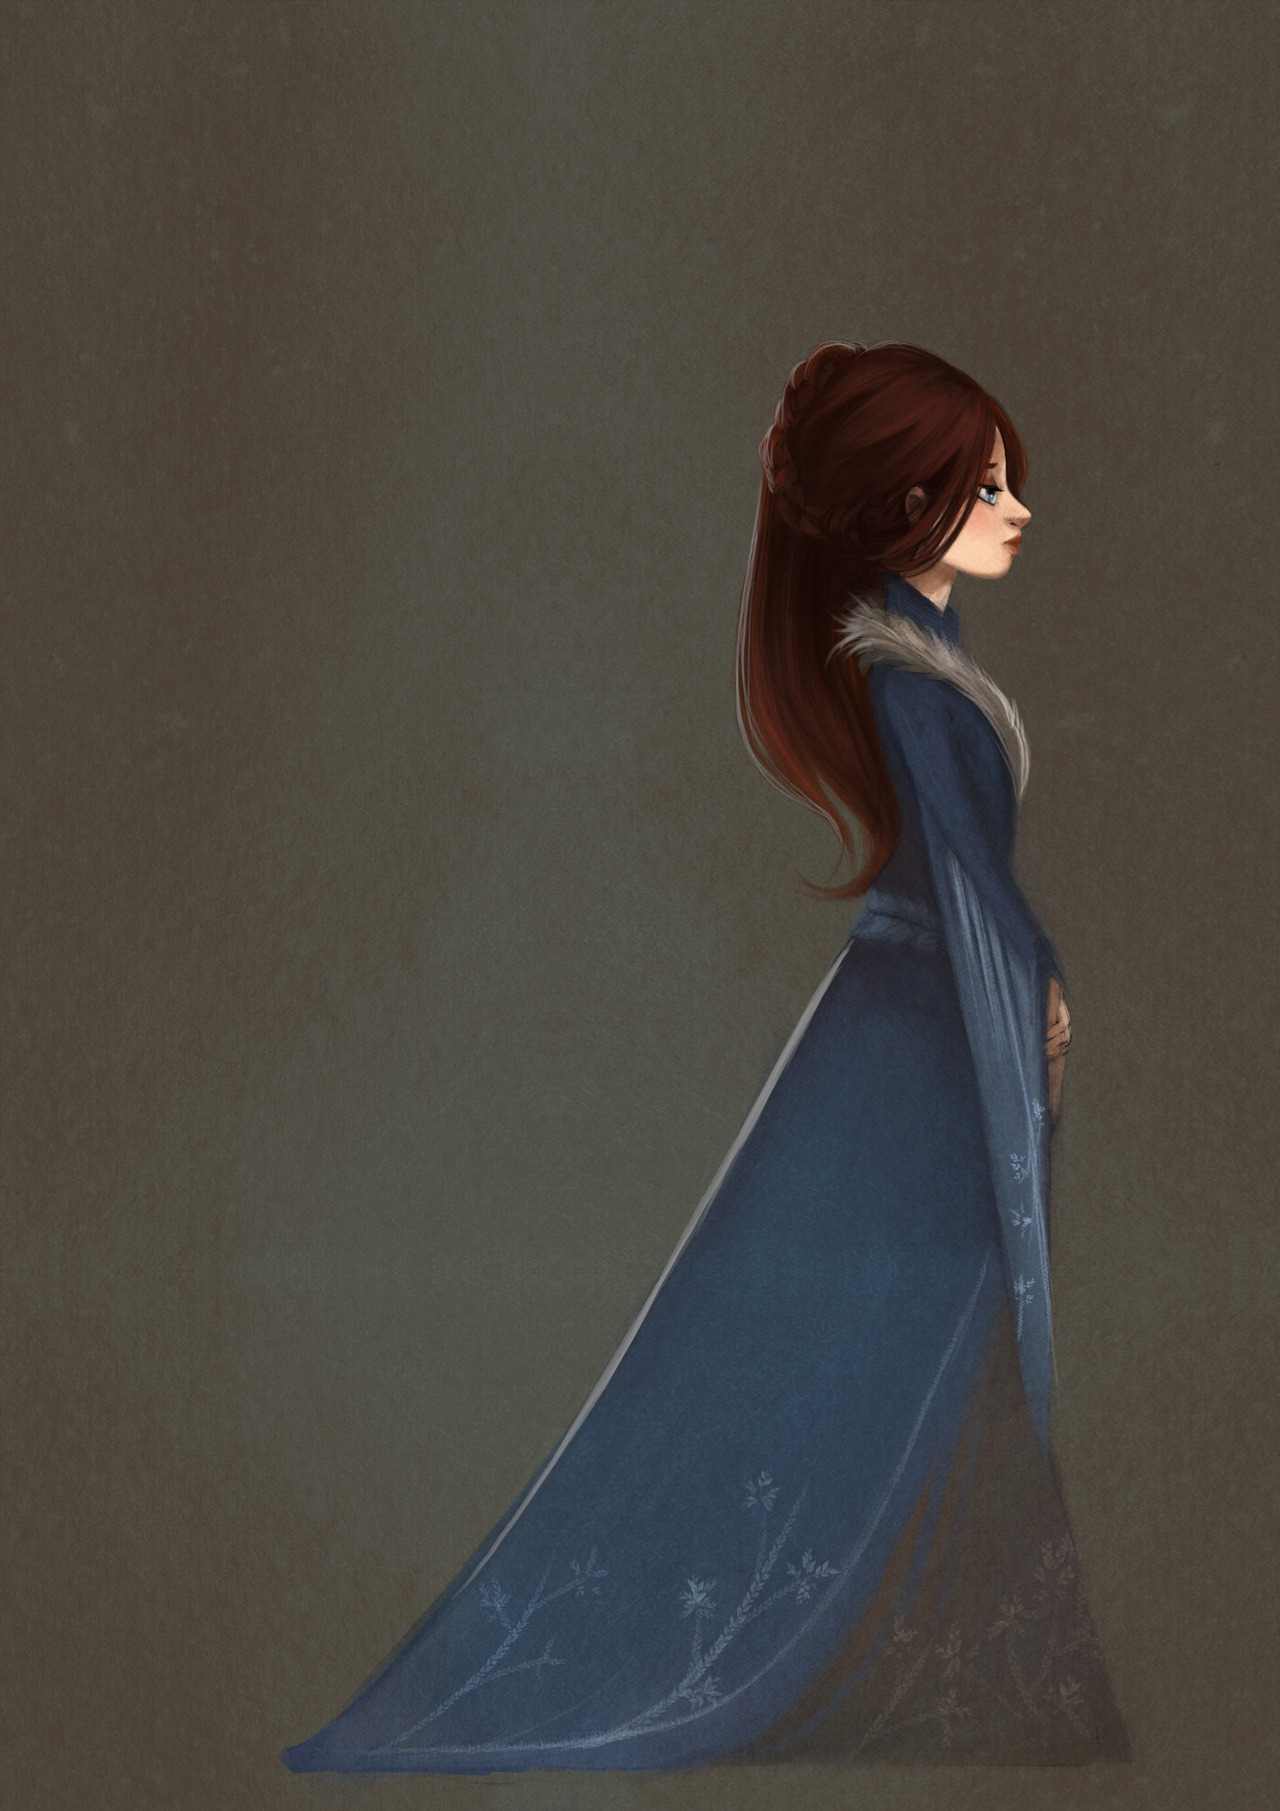 happysab:  // Sansa // Been struggling for the past few weeks, job searching is depressing. Anyway, following slowly with Game of Throne series. Here's a quick Sansa. Others : Arya / Daenerys / Cersei   wow, so elegant and graceful